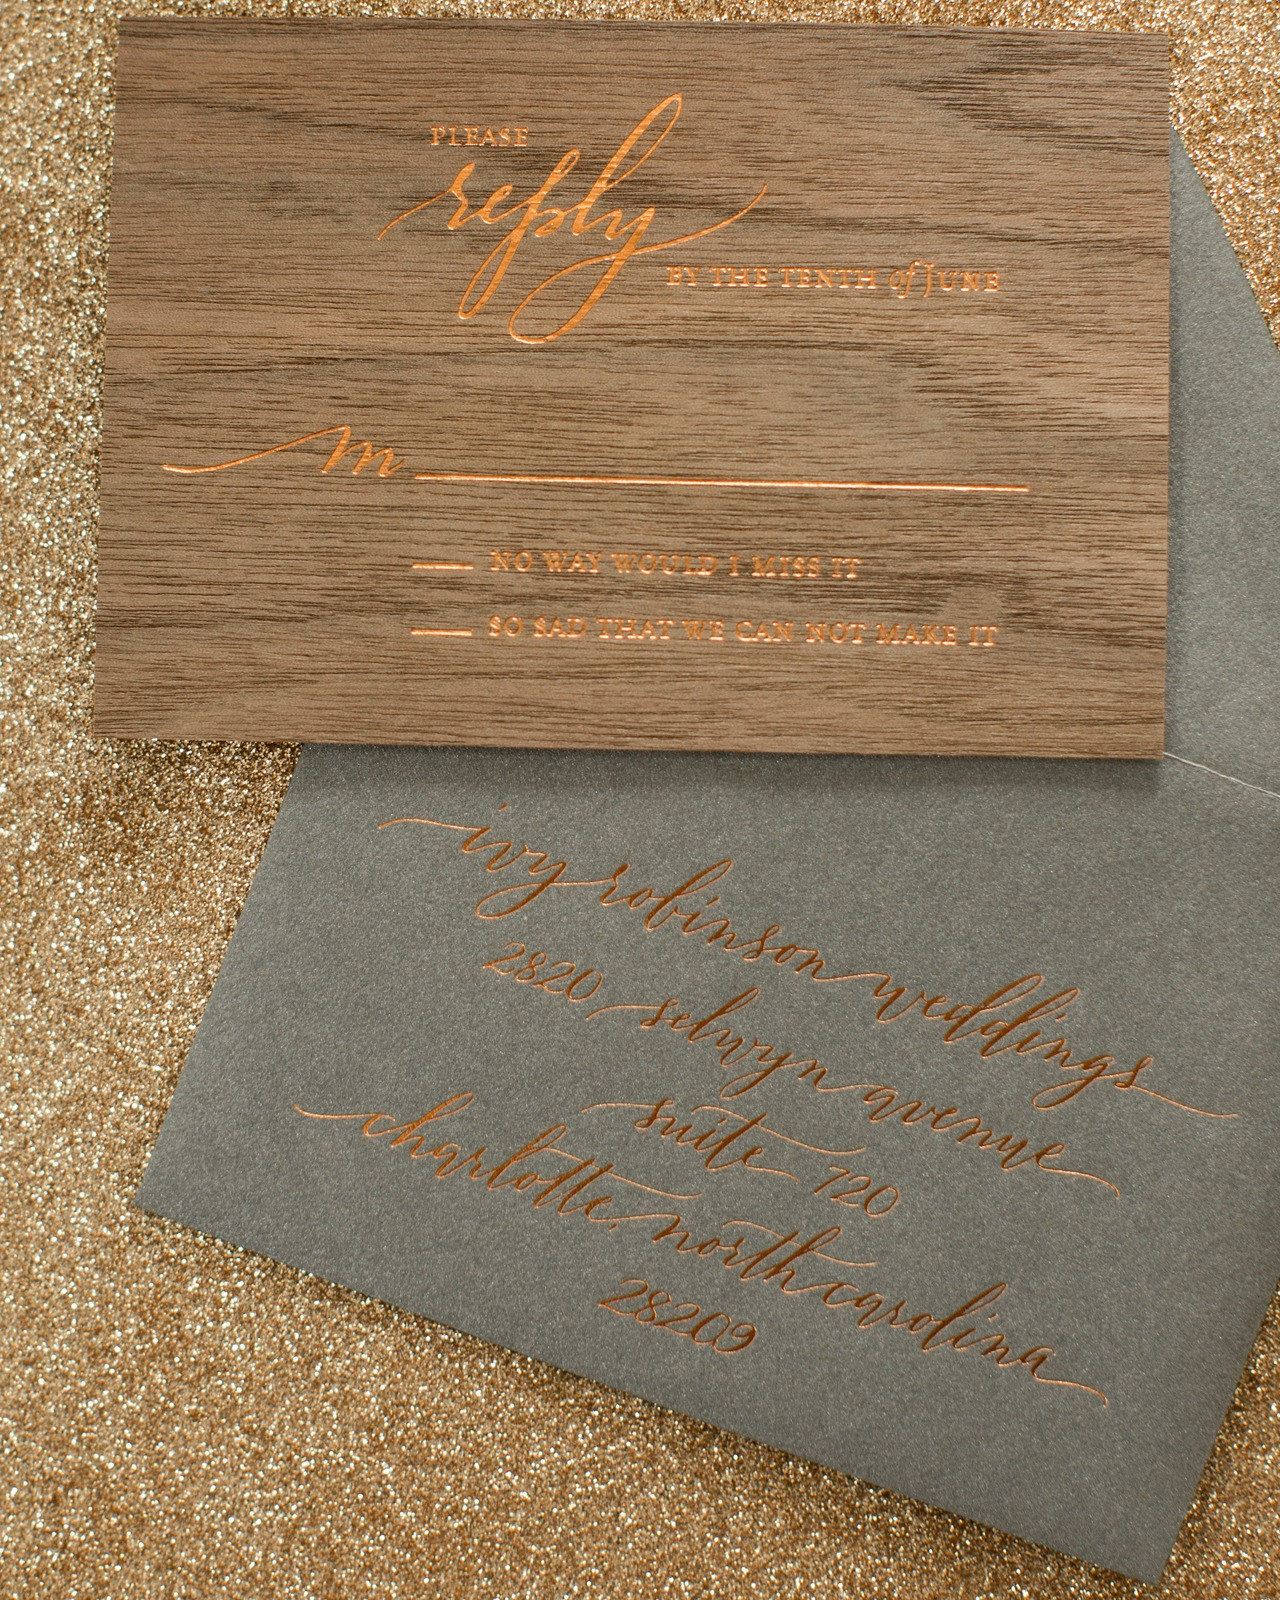 Rustic Boho Wood and Copper Foil Wedding Invitations by Atheneum Creative